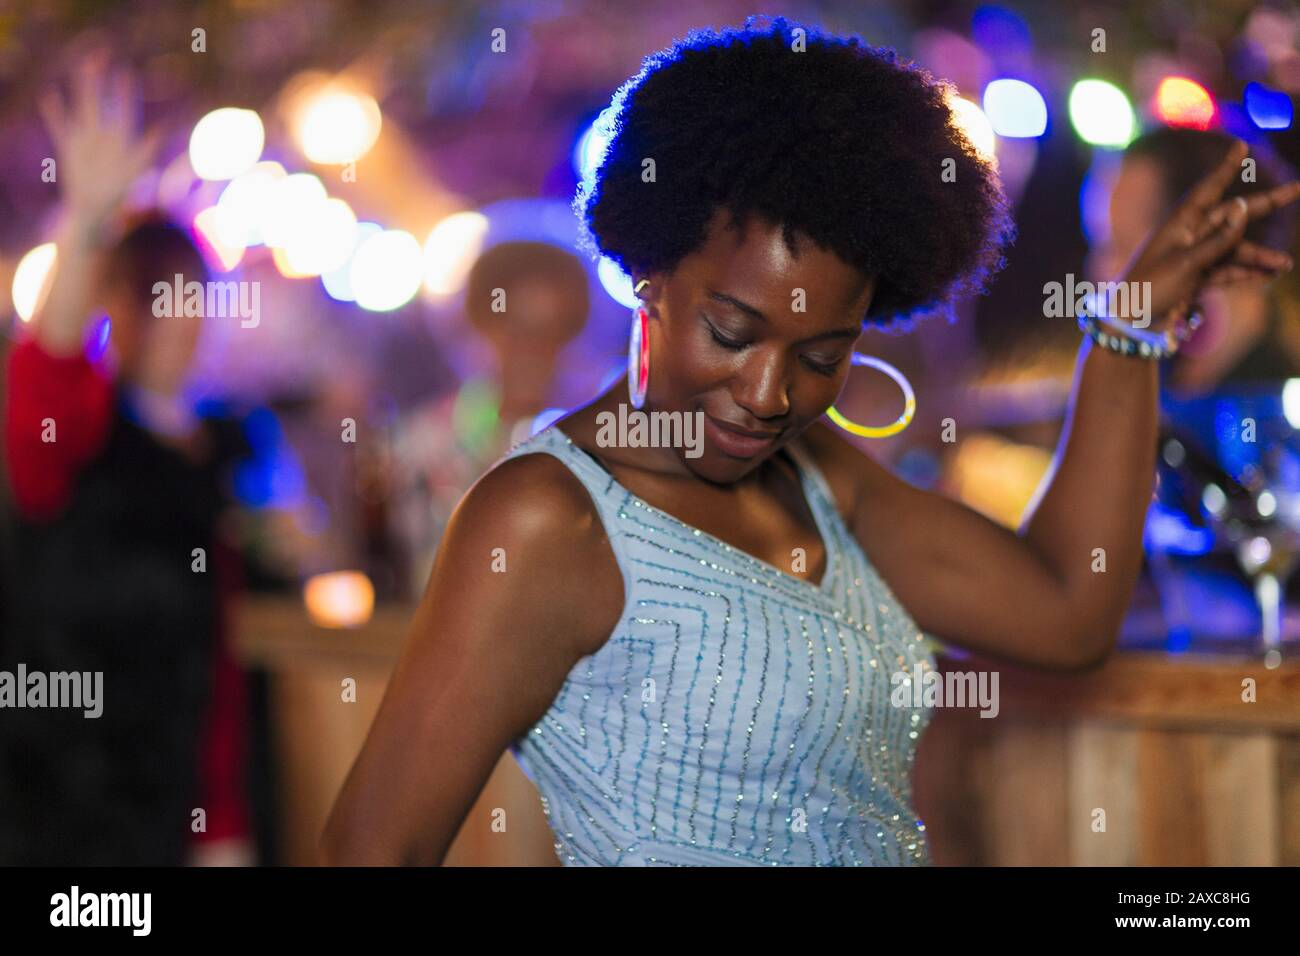 Carefree woman with neon earrings dancing at party Stock Photo